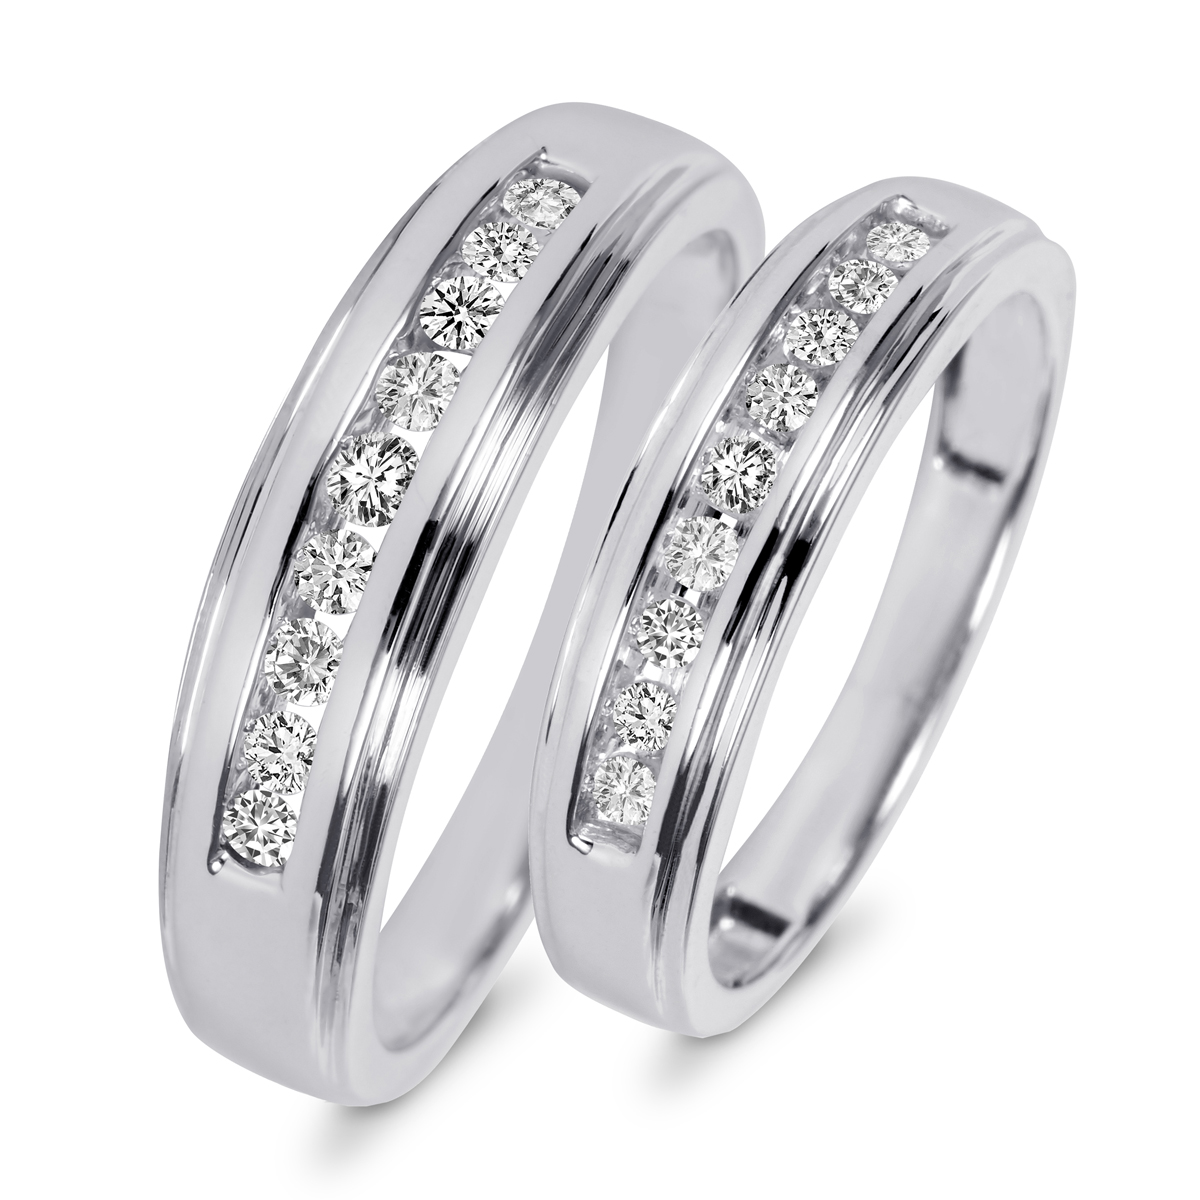 top best wedding bands rings mens women diamond sets titanium gold cheap black white rose gold wedding bands Two Tone Sterling Silver 10k Yellow Gold Wedding Band